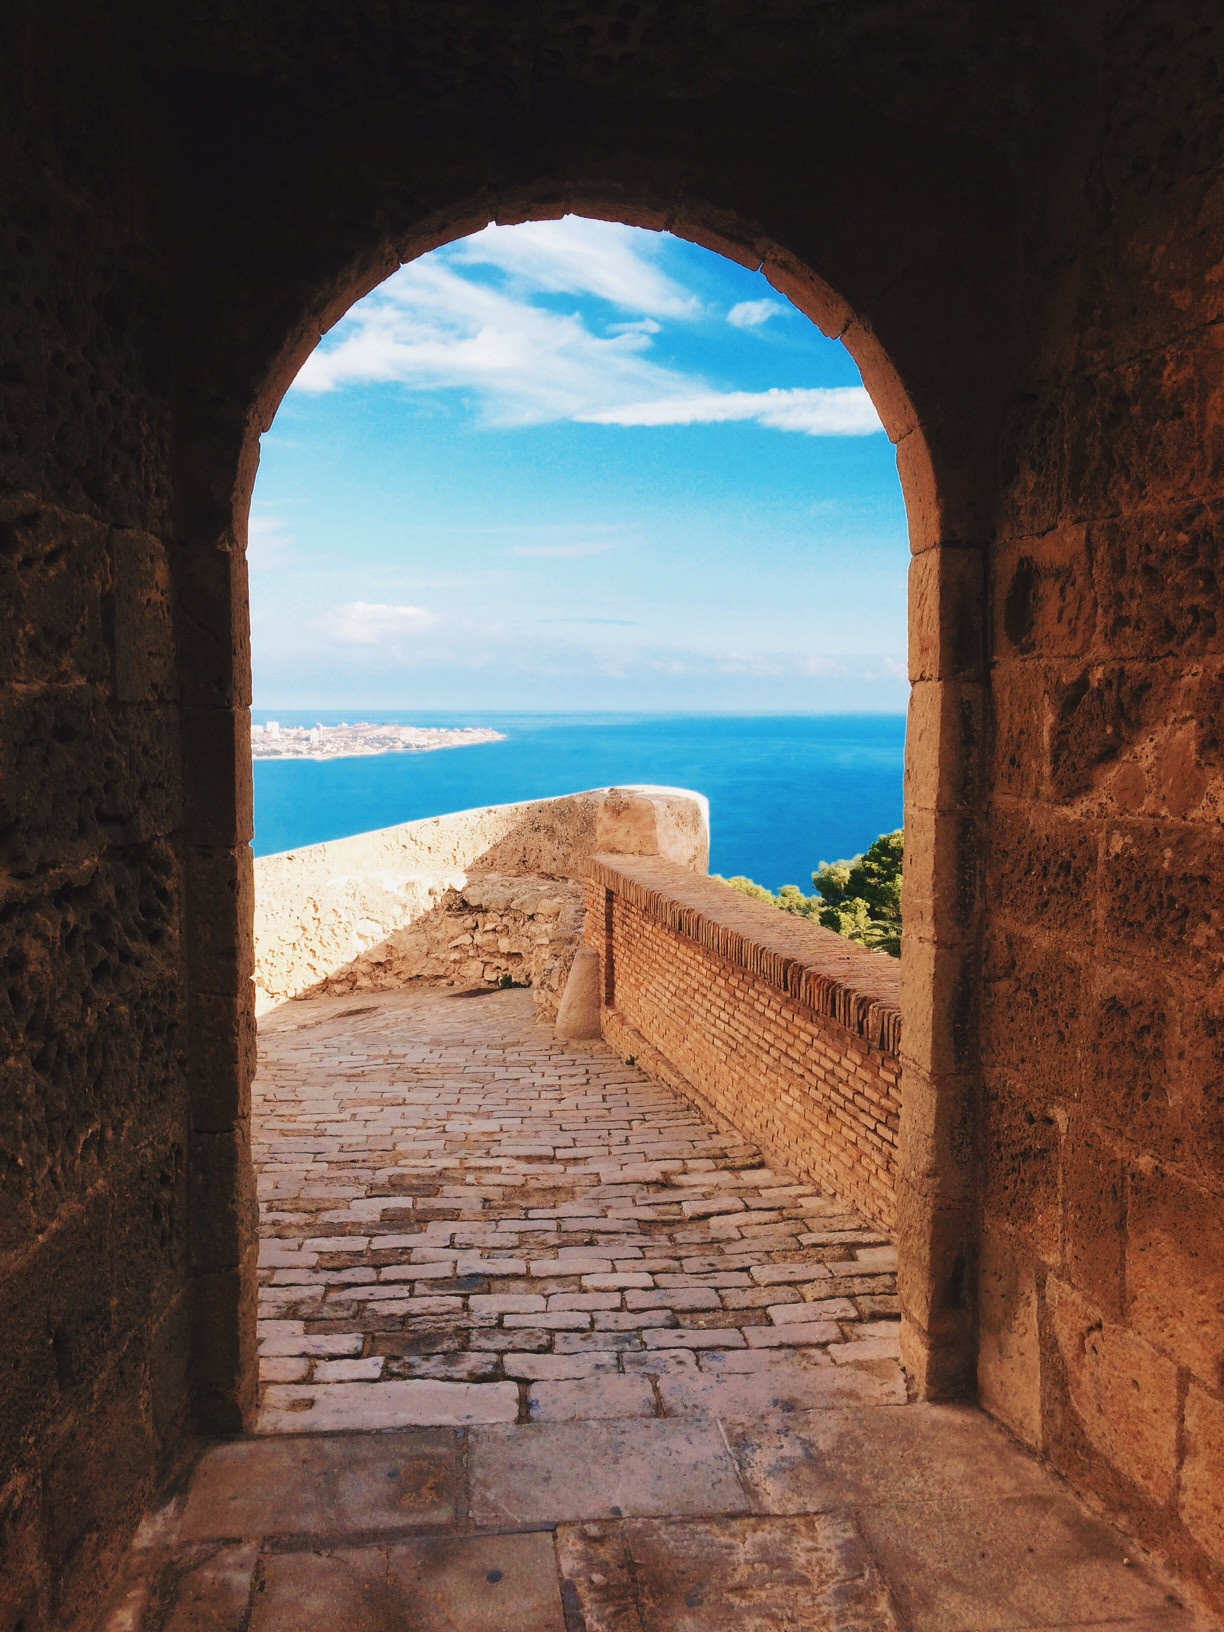 A view from a doorway in Alicante, Spain.